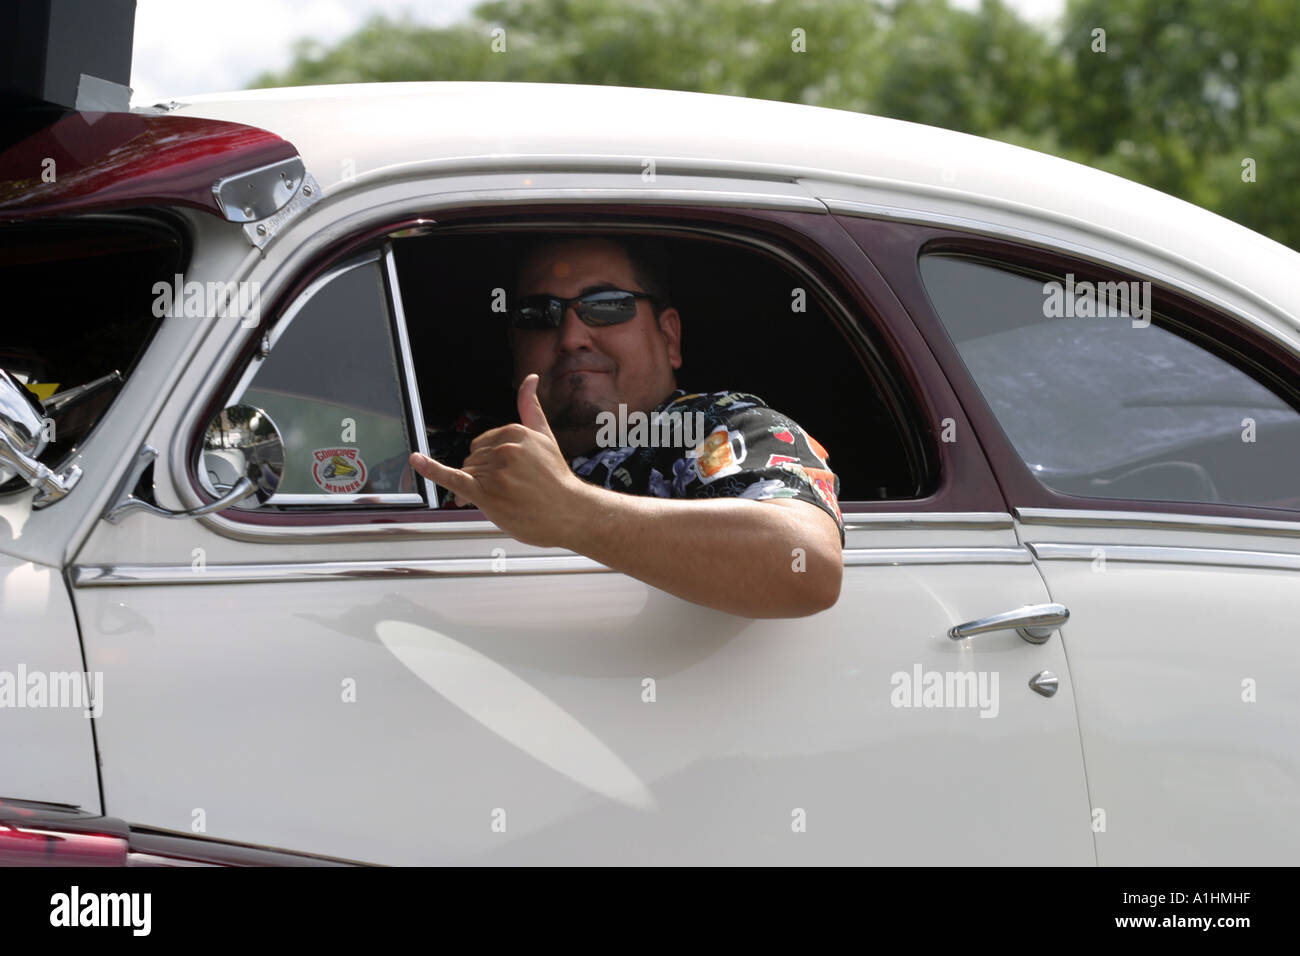 man driving looking out of a classic old car window giving